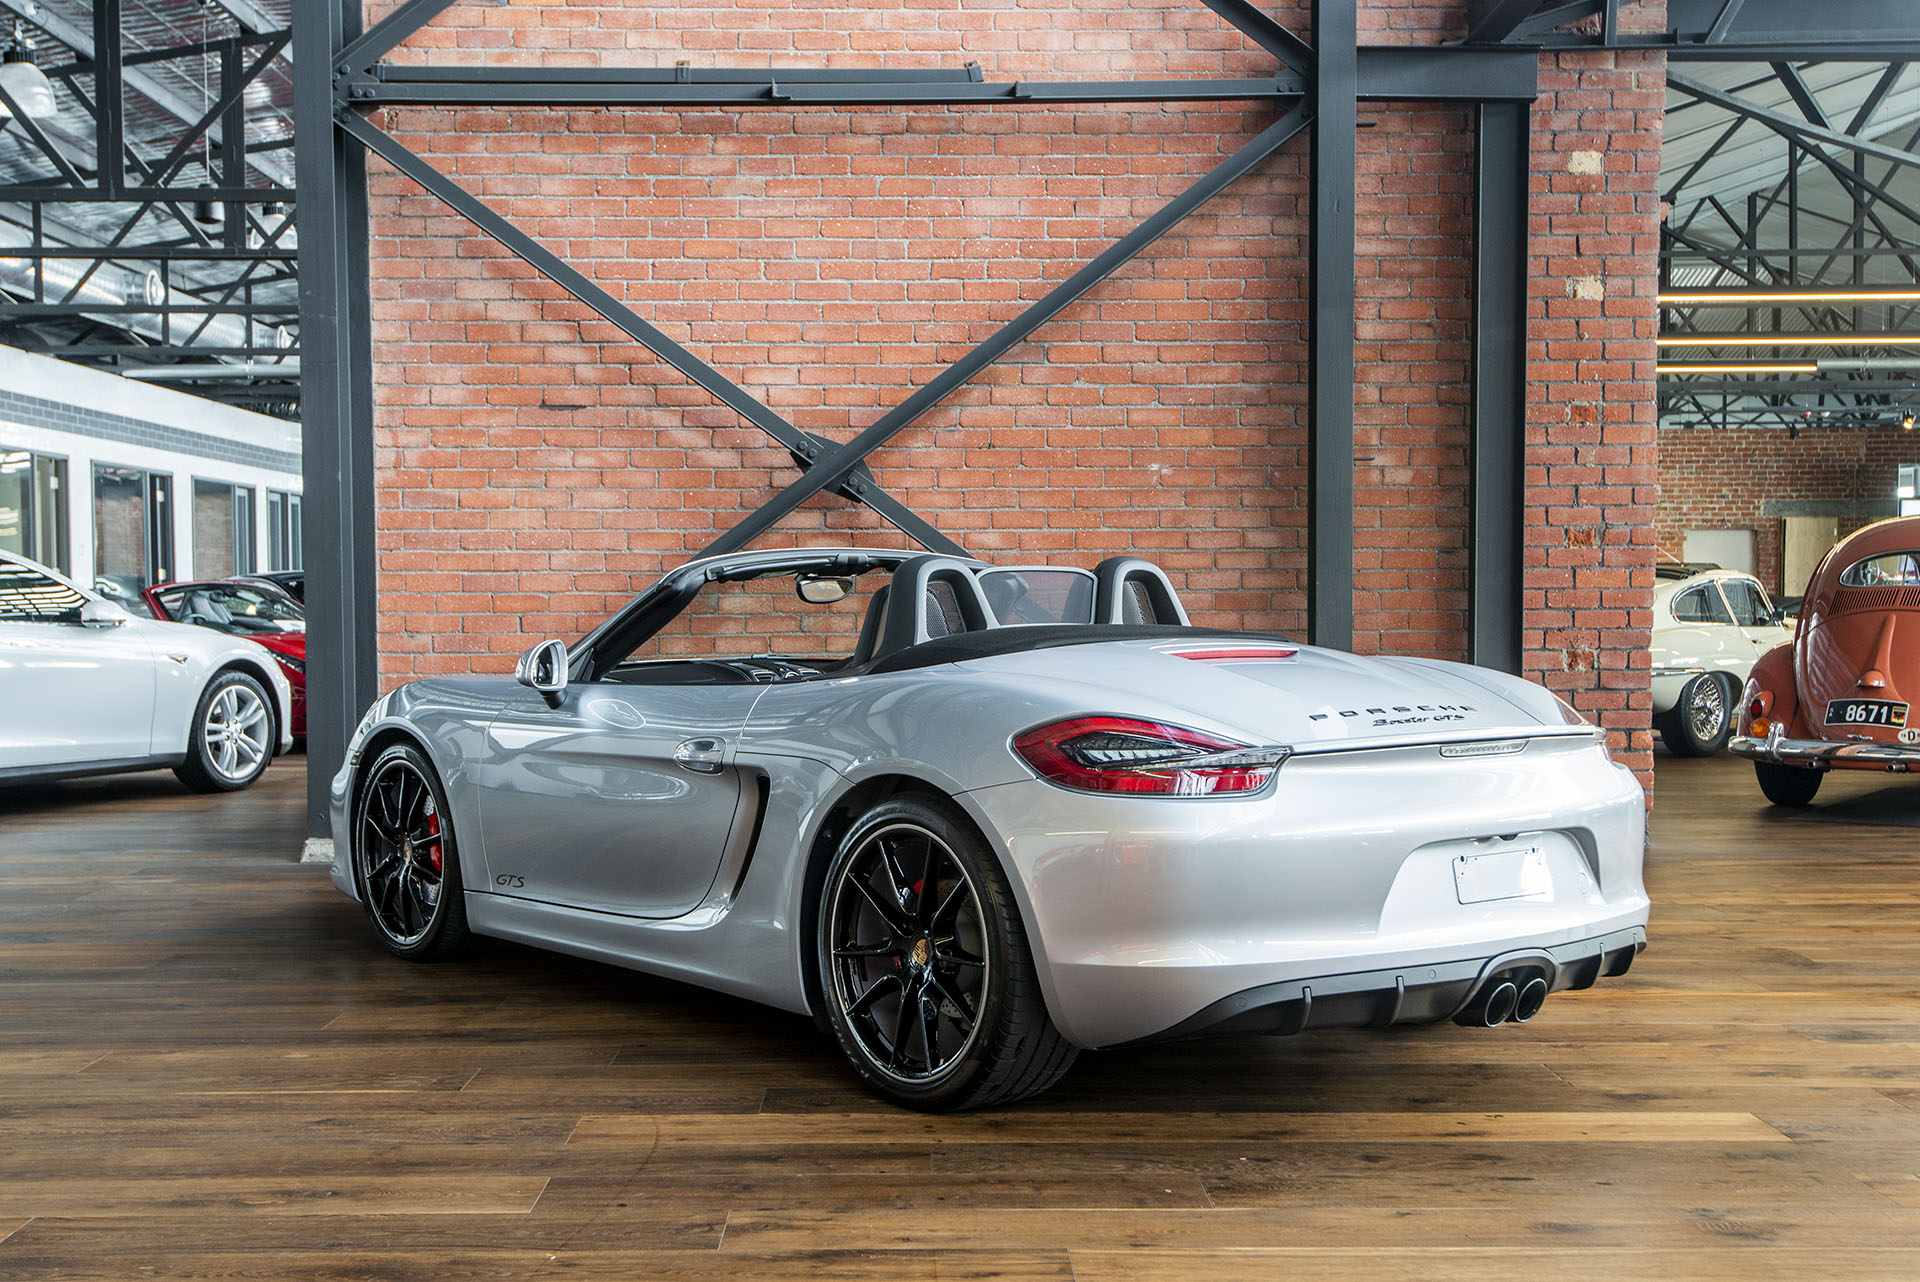 2014 Porsche Boxster Gts Pdk My15 Richmonds Classic